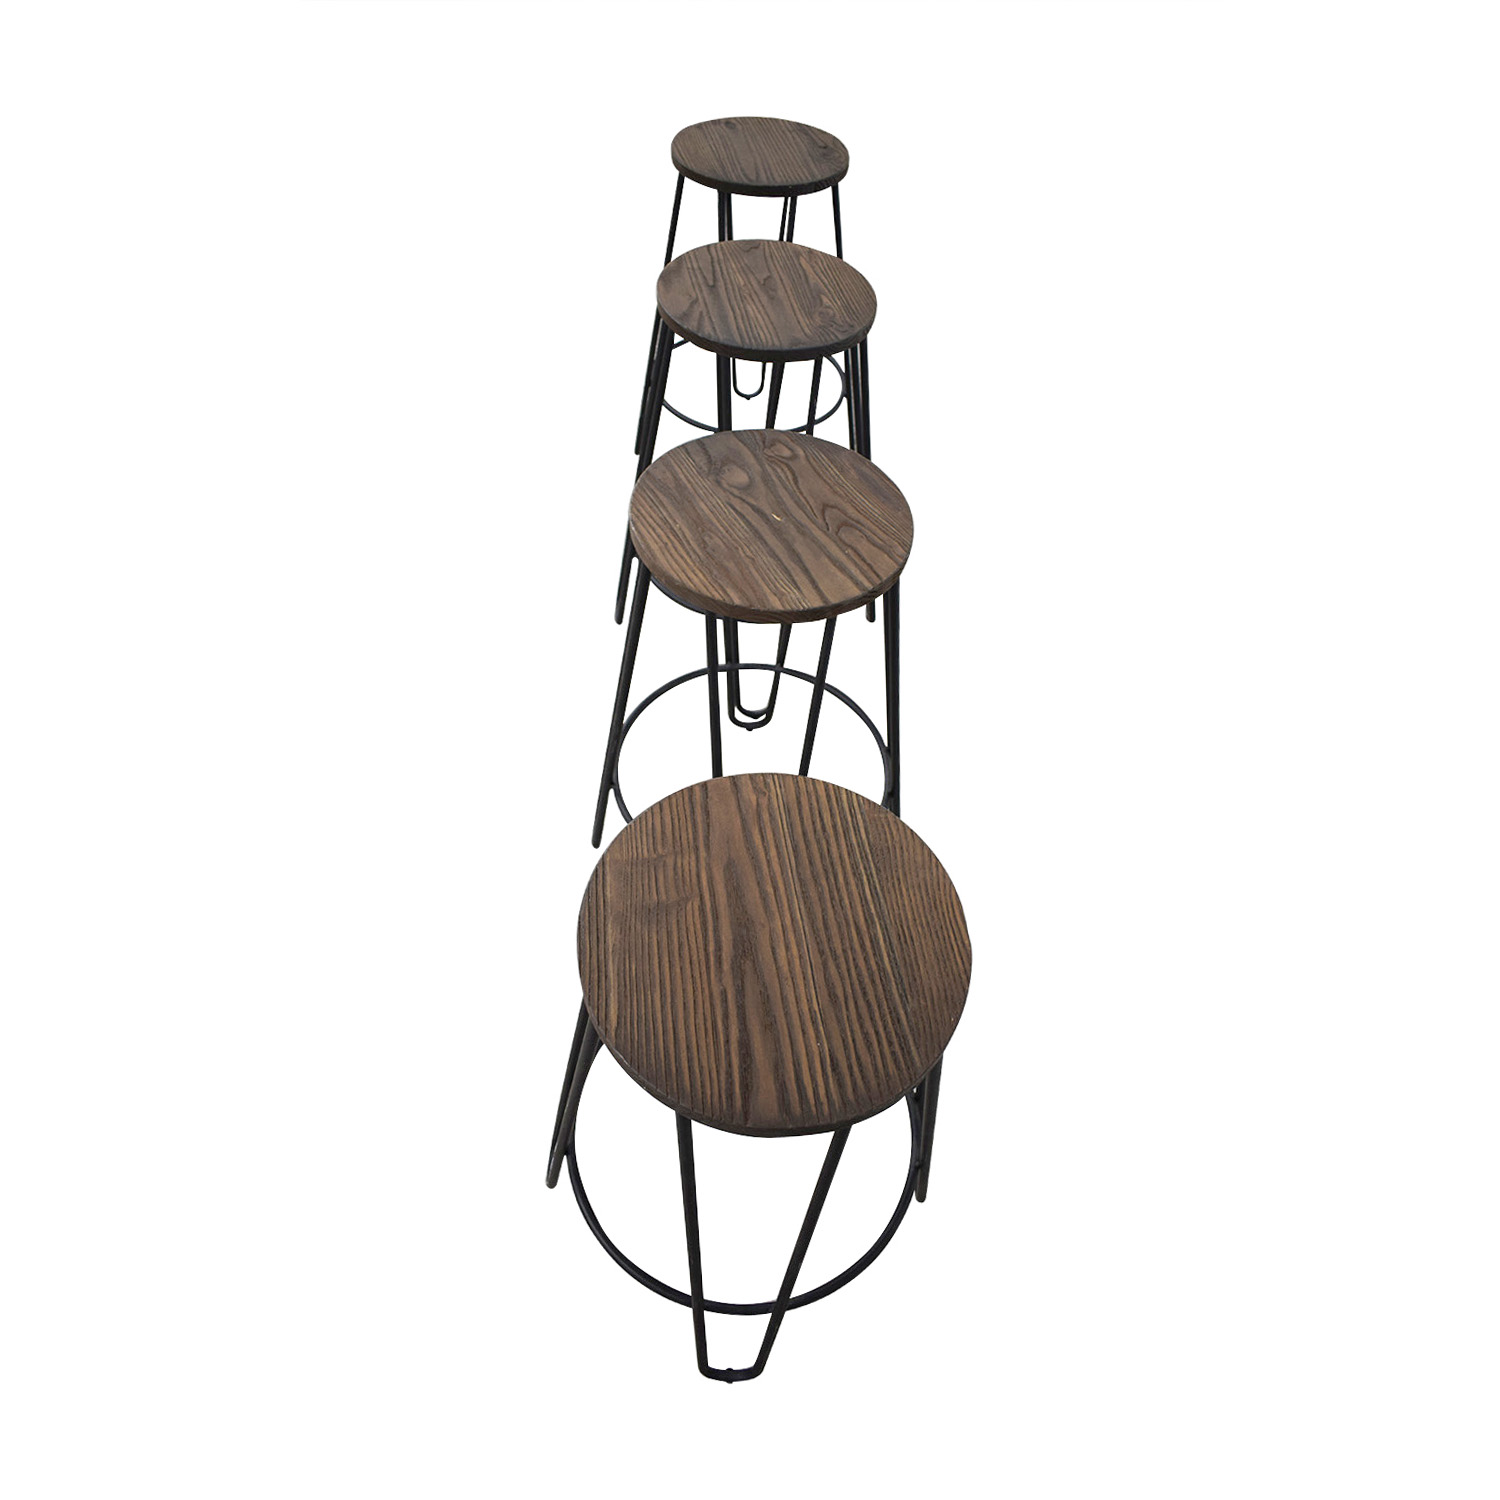 Black Wood and Metal Stools for sale